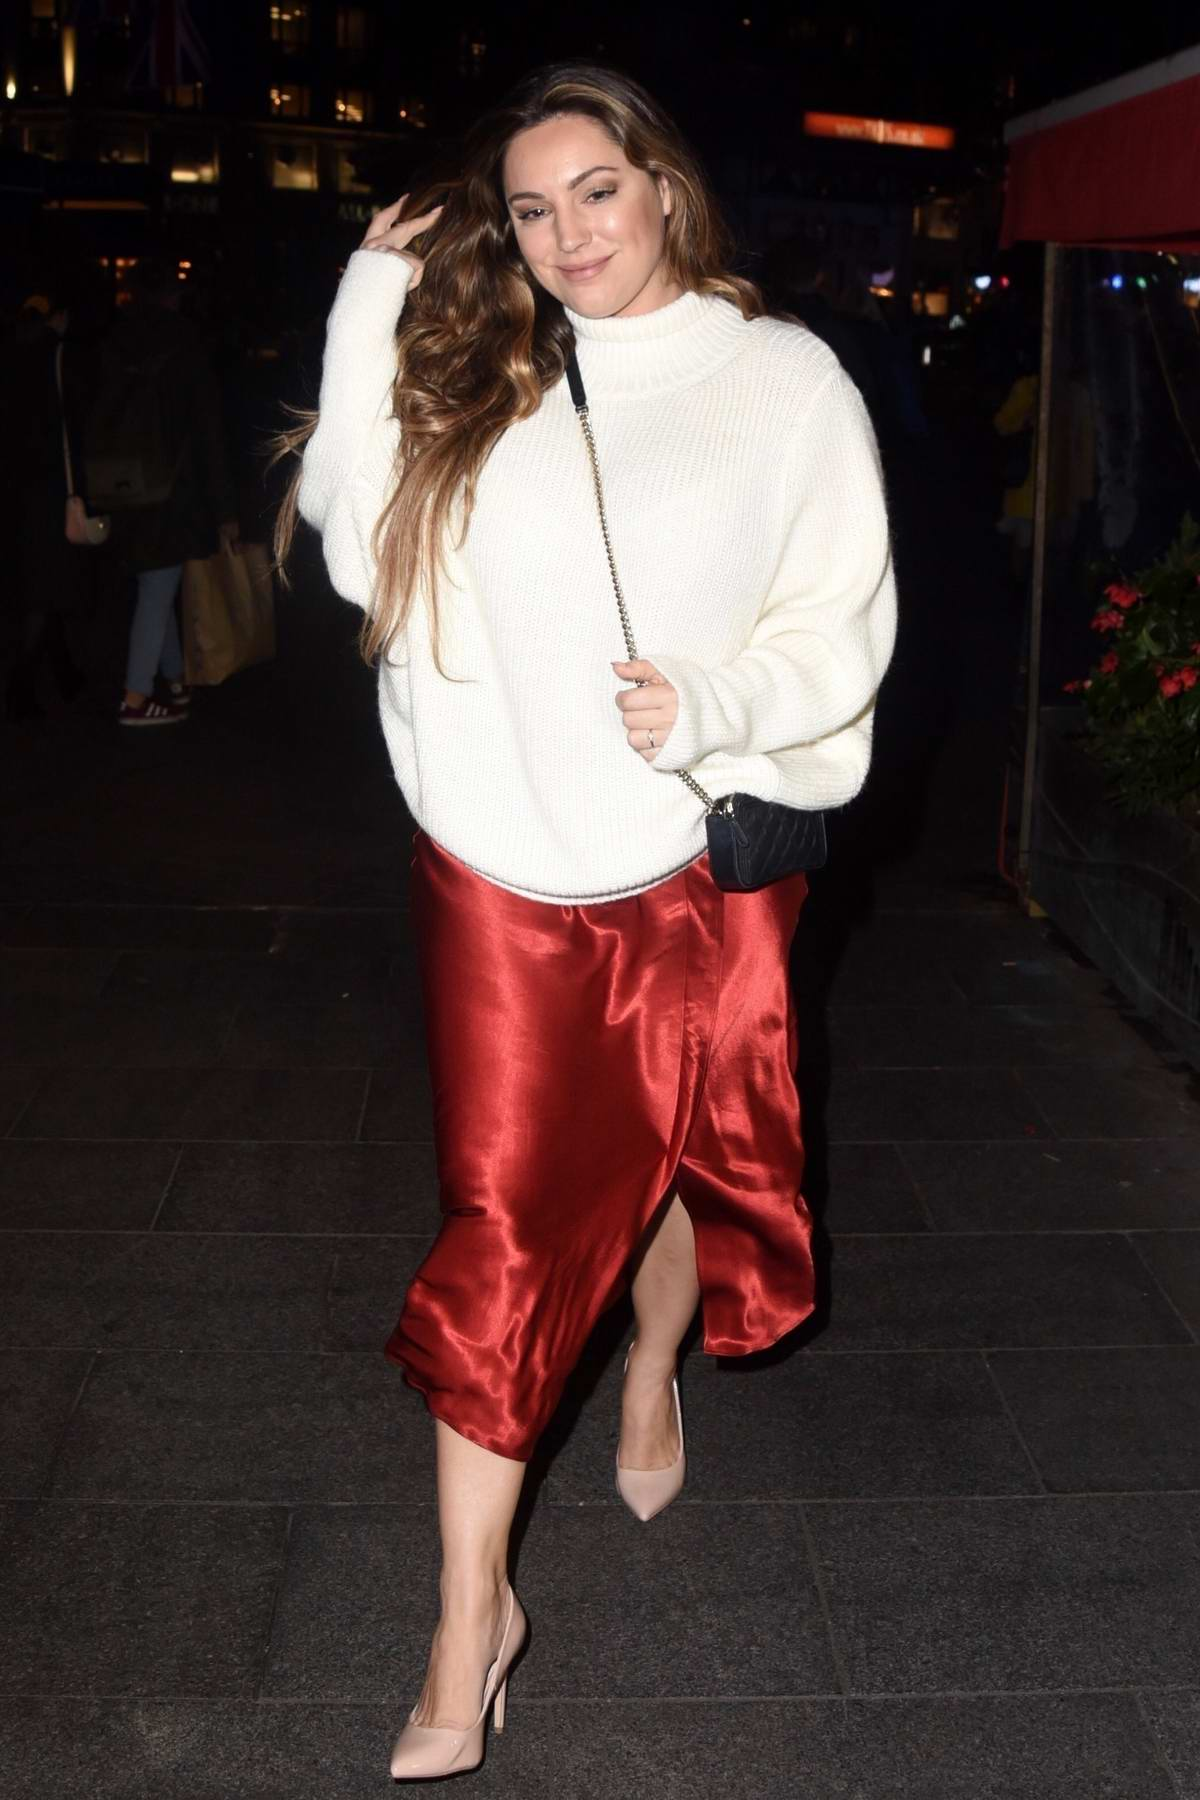 Kelly Brook seen wearing a white jumper and red skirt while leaving Global Radio studios in London, UK